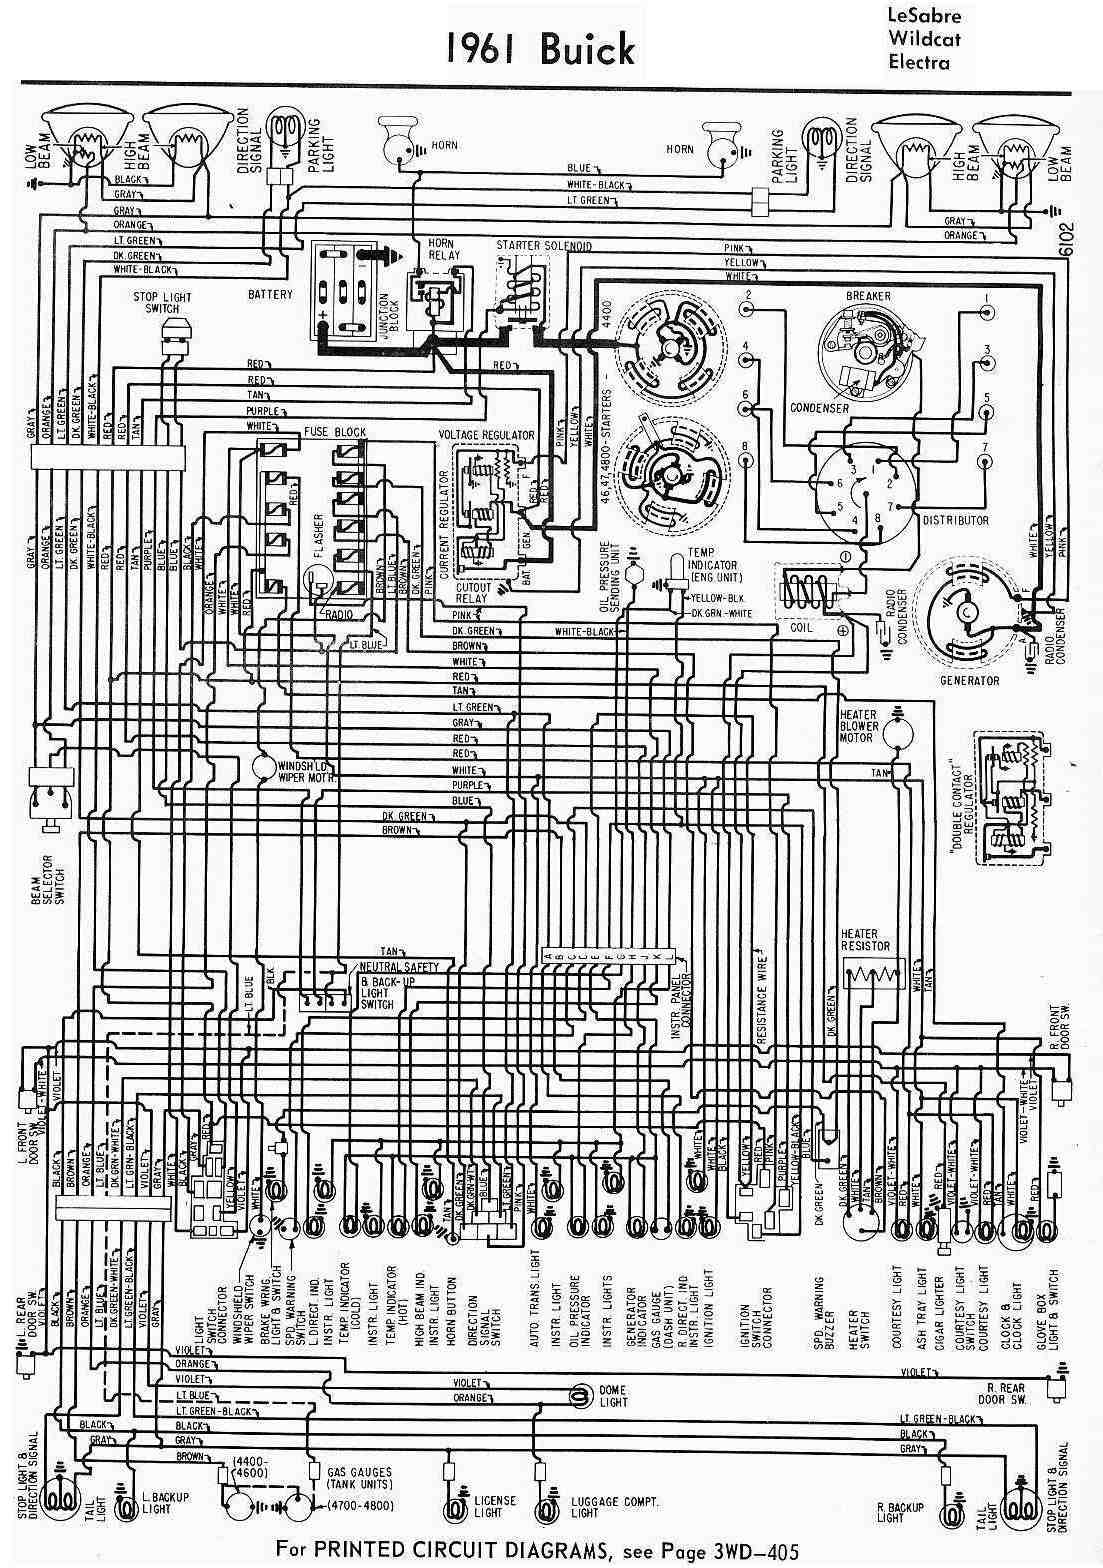 small resolution of wiring diagram for 1997 buick lesabre wiring diagram expert wiring diagram 2000 buick lesabre